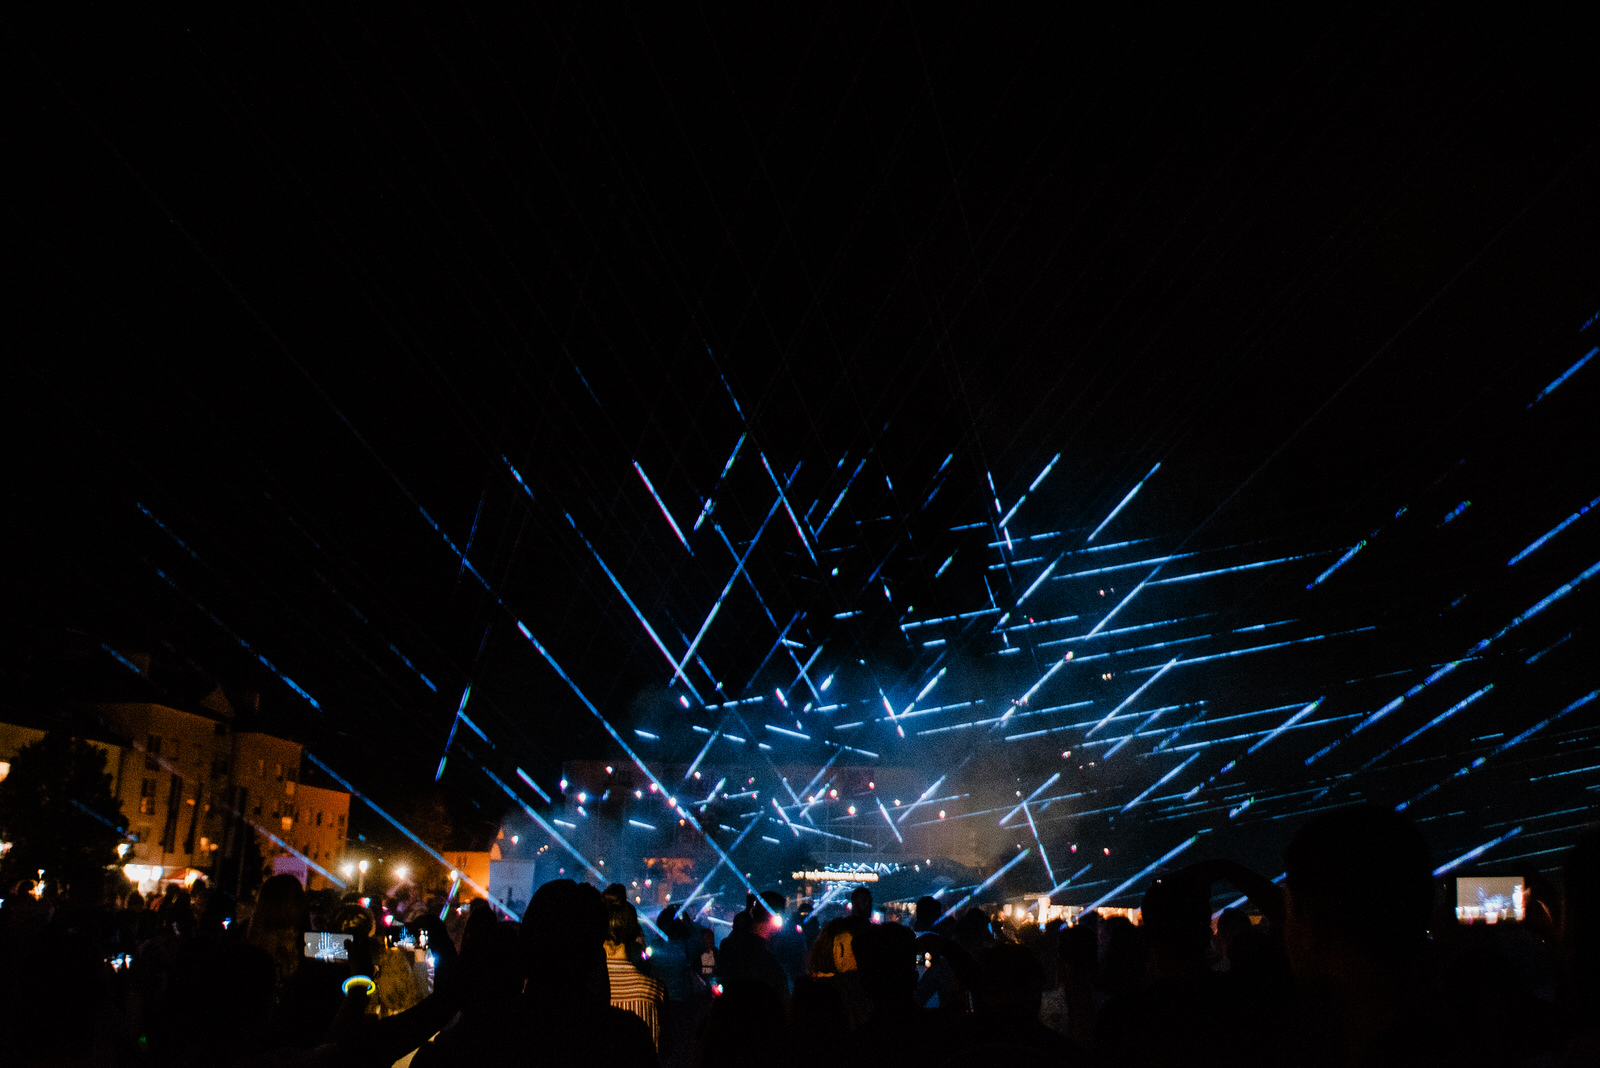 likaclub_gospić_tesla-light-show_2019-77